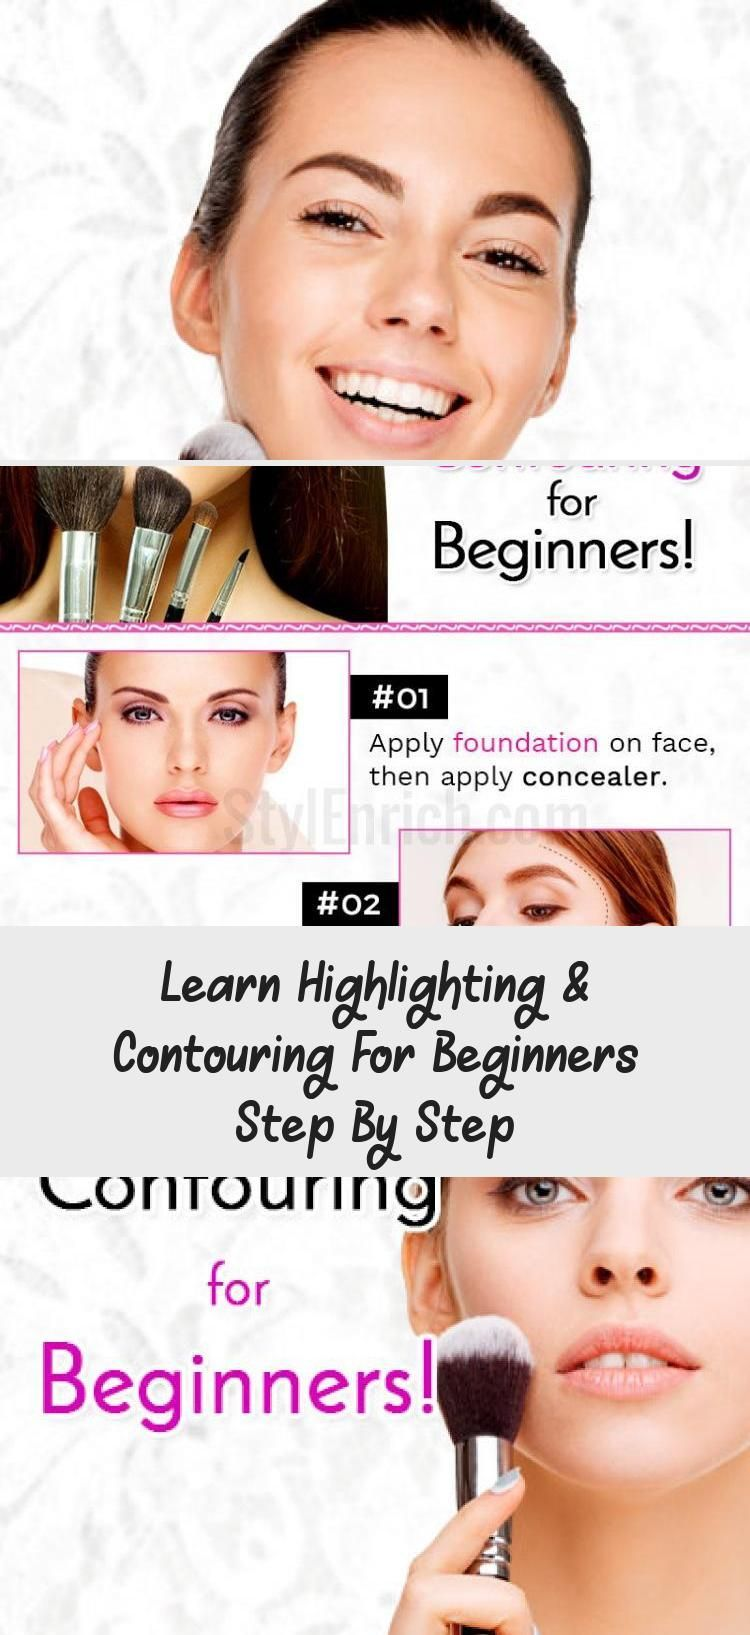 Learn Highlighting & Contouring For Beginners Step By Step